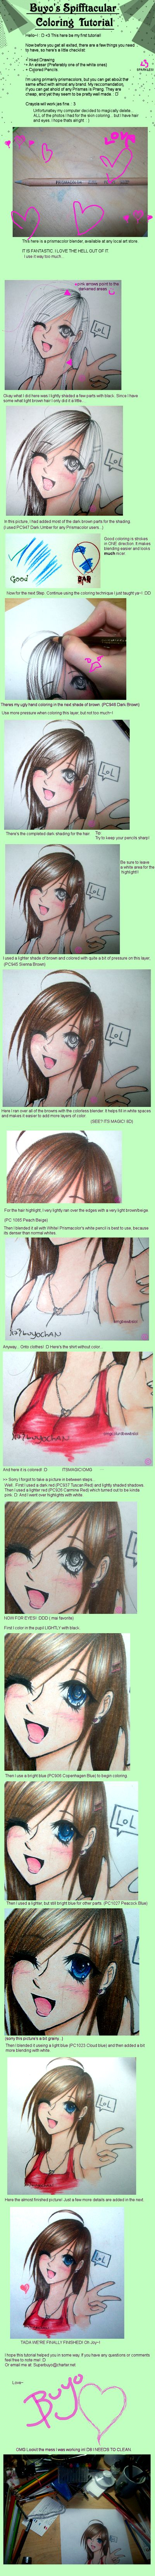 Colored Pencil Tutorial by ~buyochan on deviantART